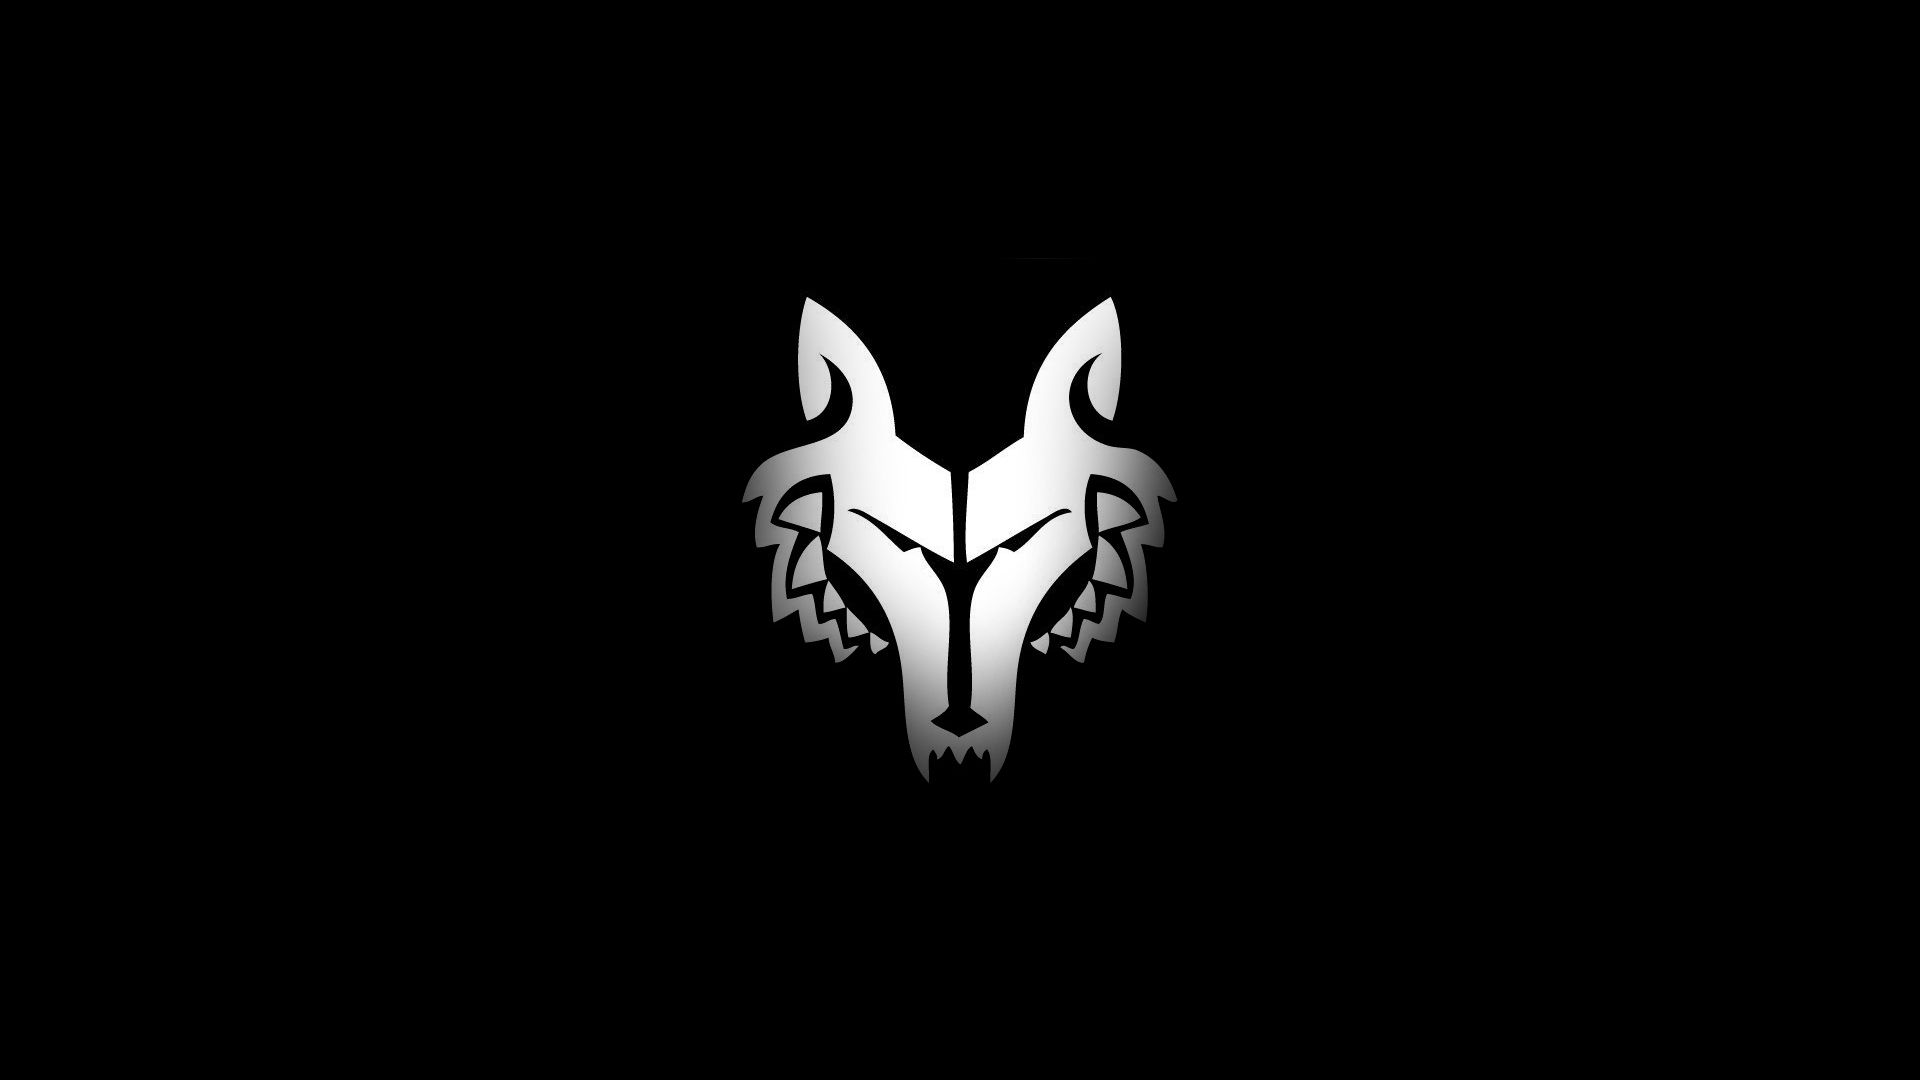 Star Wars 104th Wolfpack Emblem Full Hd 1960x1080 For Pc Rework By Rabisa47 In 2020 Star Wars Wallpaper Star Wars Characters Wolf Emblem